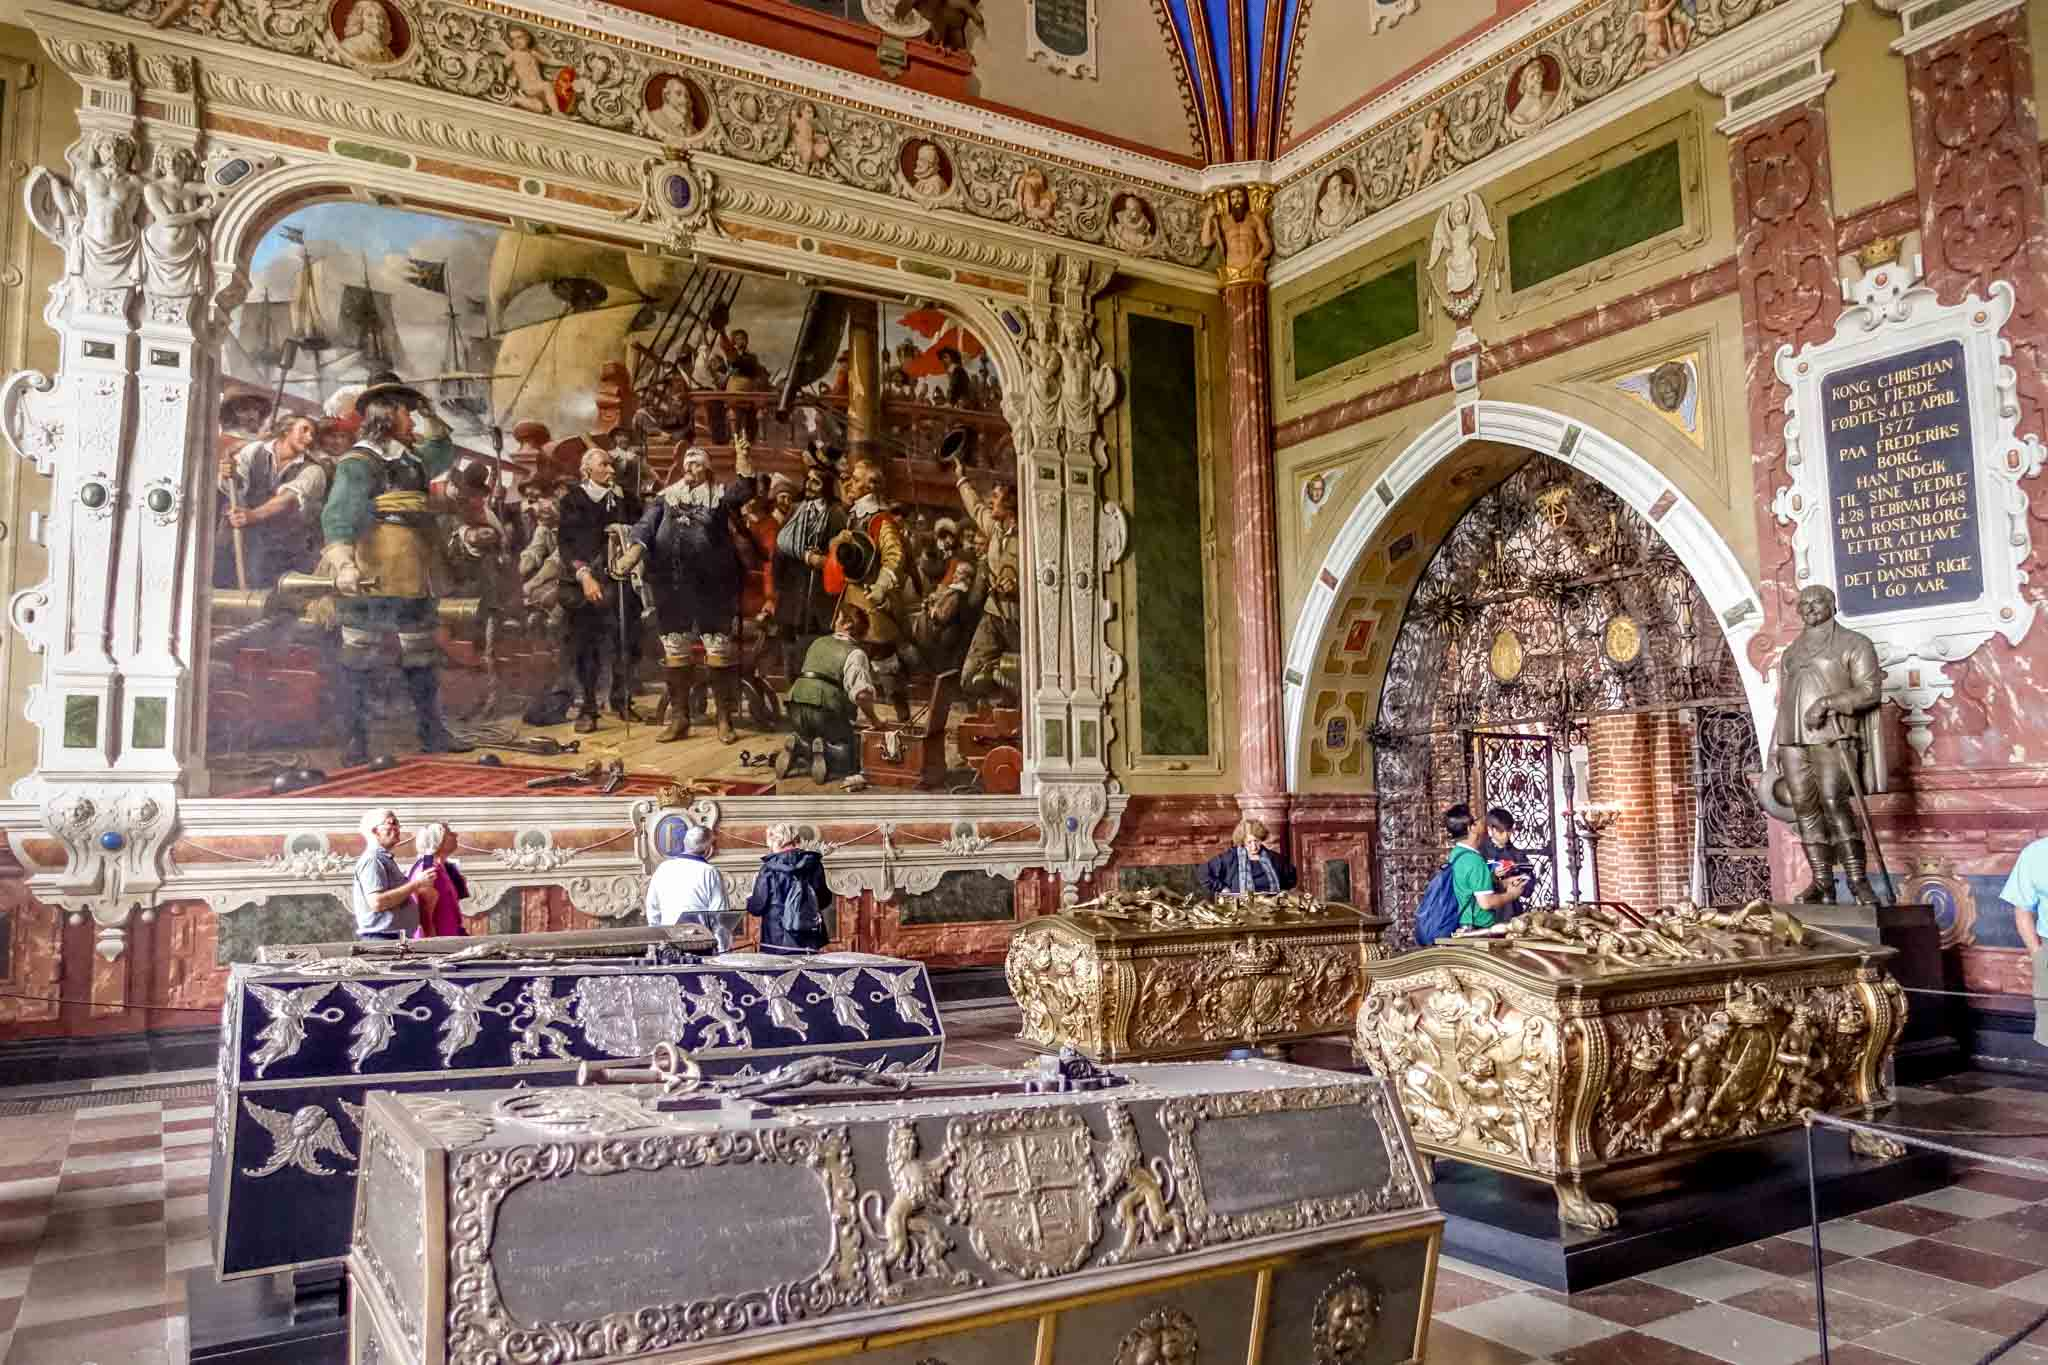 Decorated tombs inside a room with marble and paintings